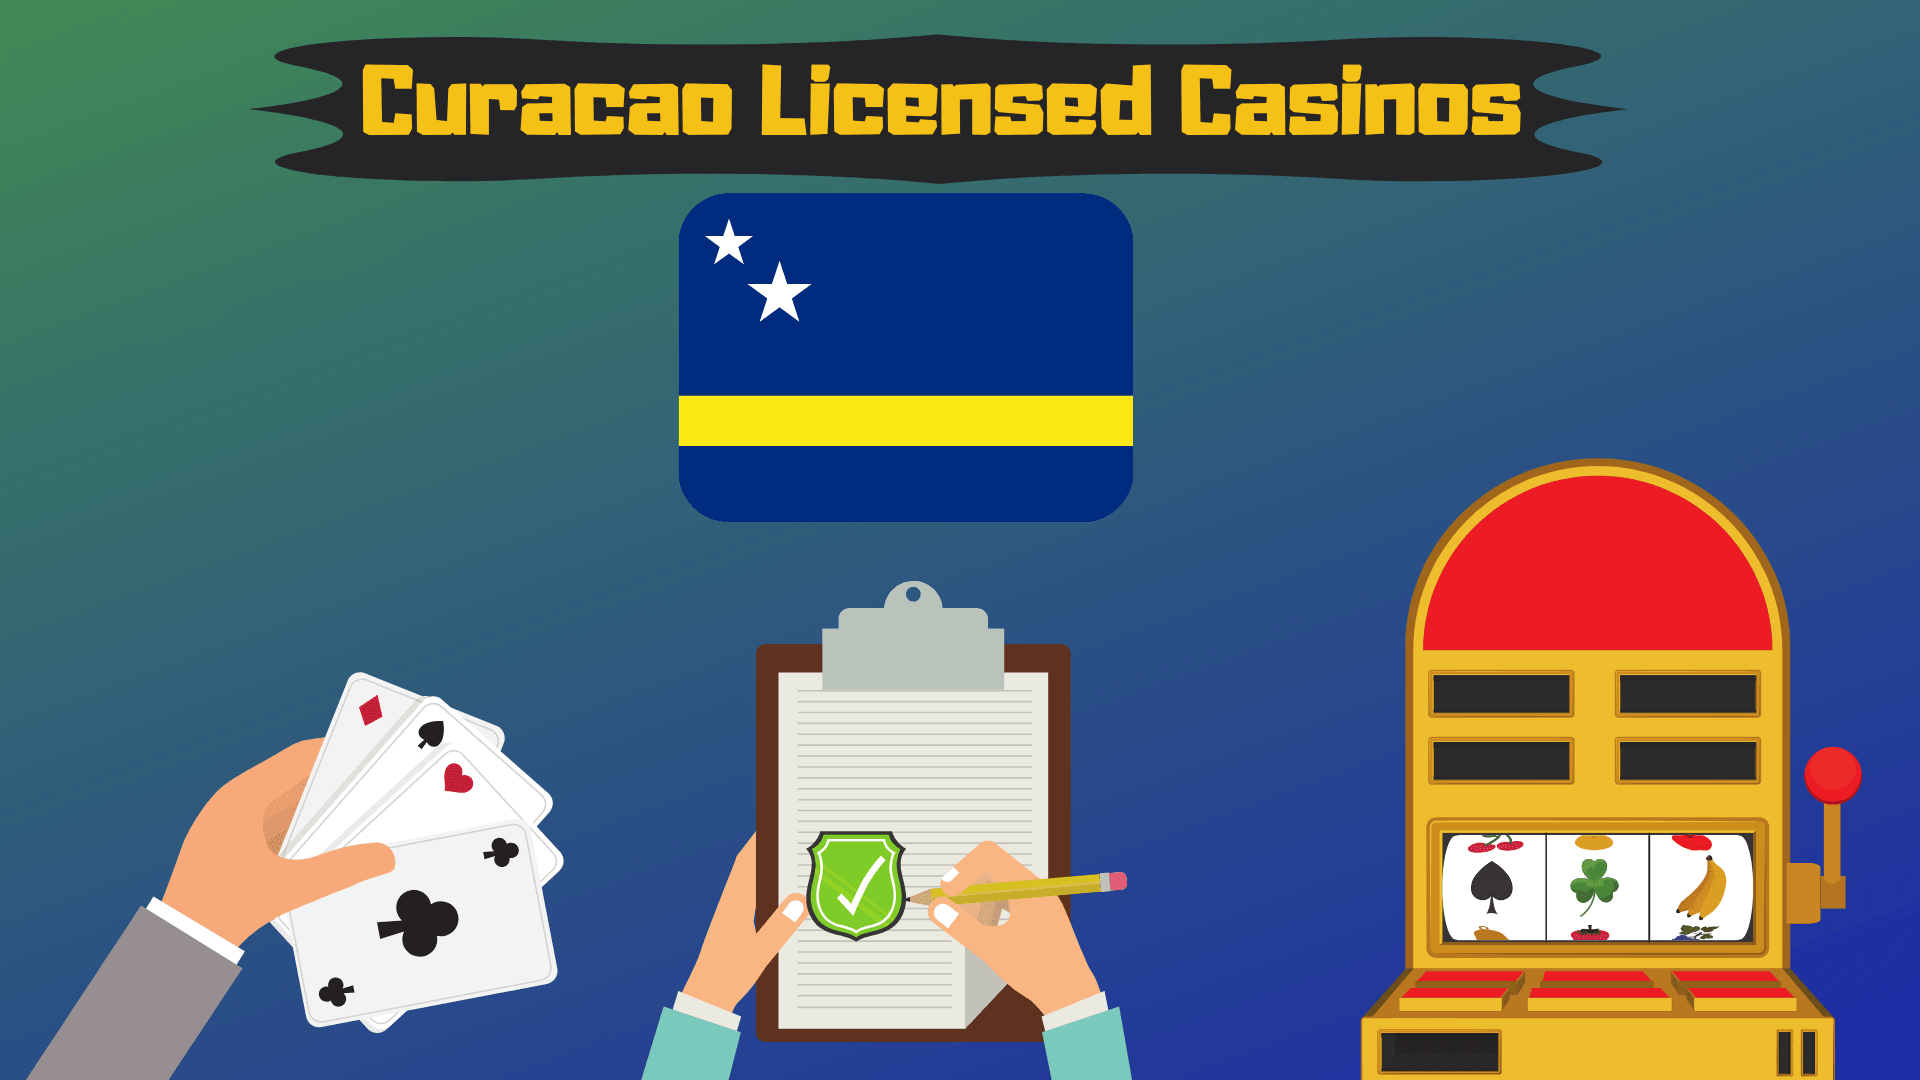 Curacao Licensed Casinos